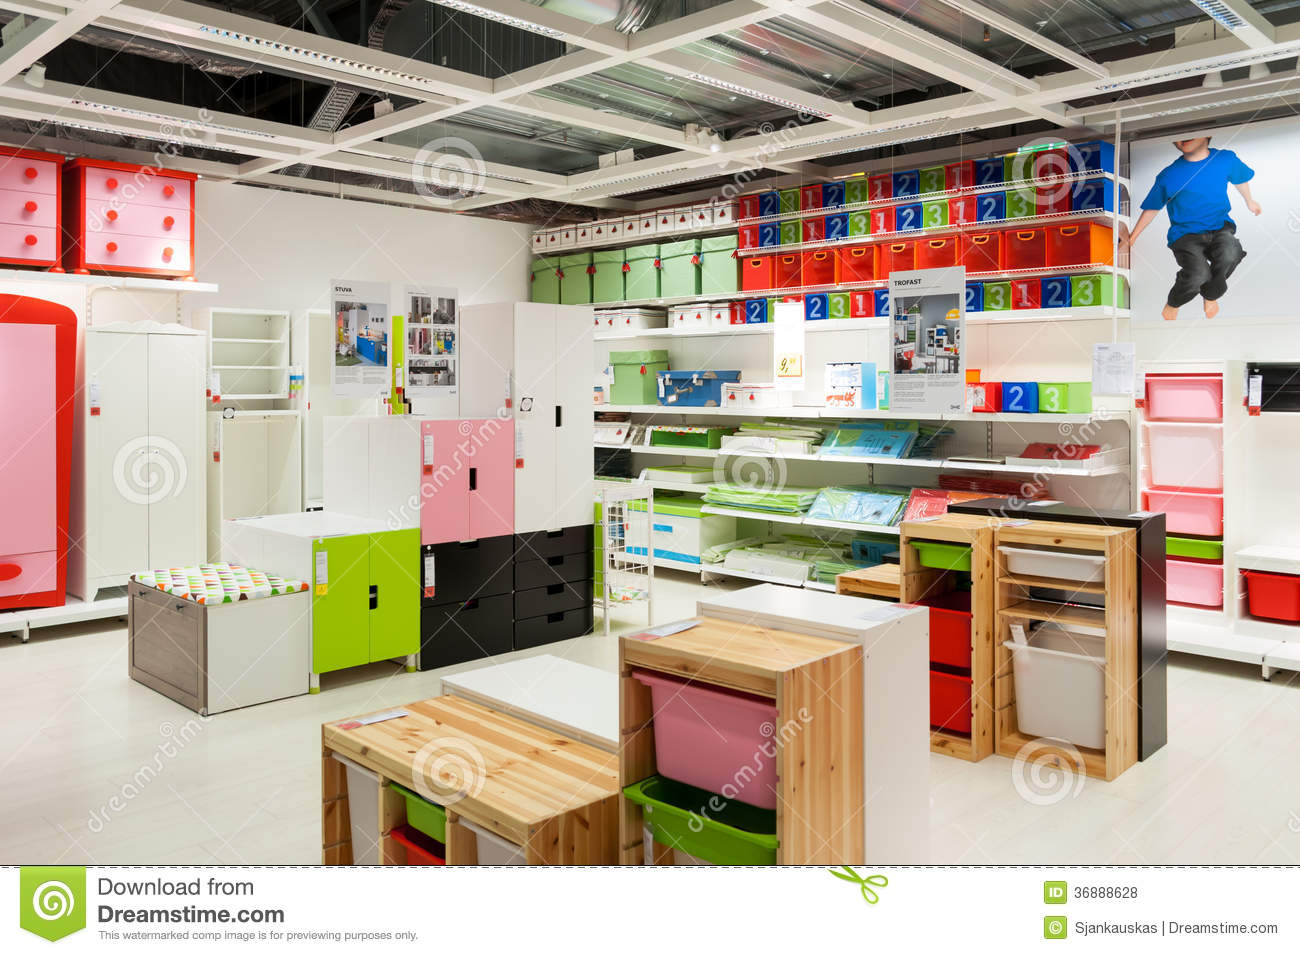 Magasin De Meuble Bobigny Le Magasin De Meubles D 39ikea Badine La Zone Photo Stock